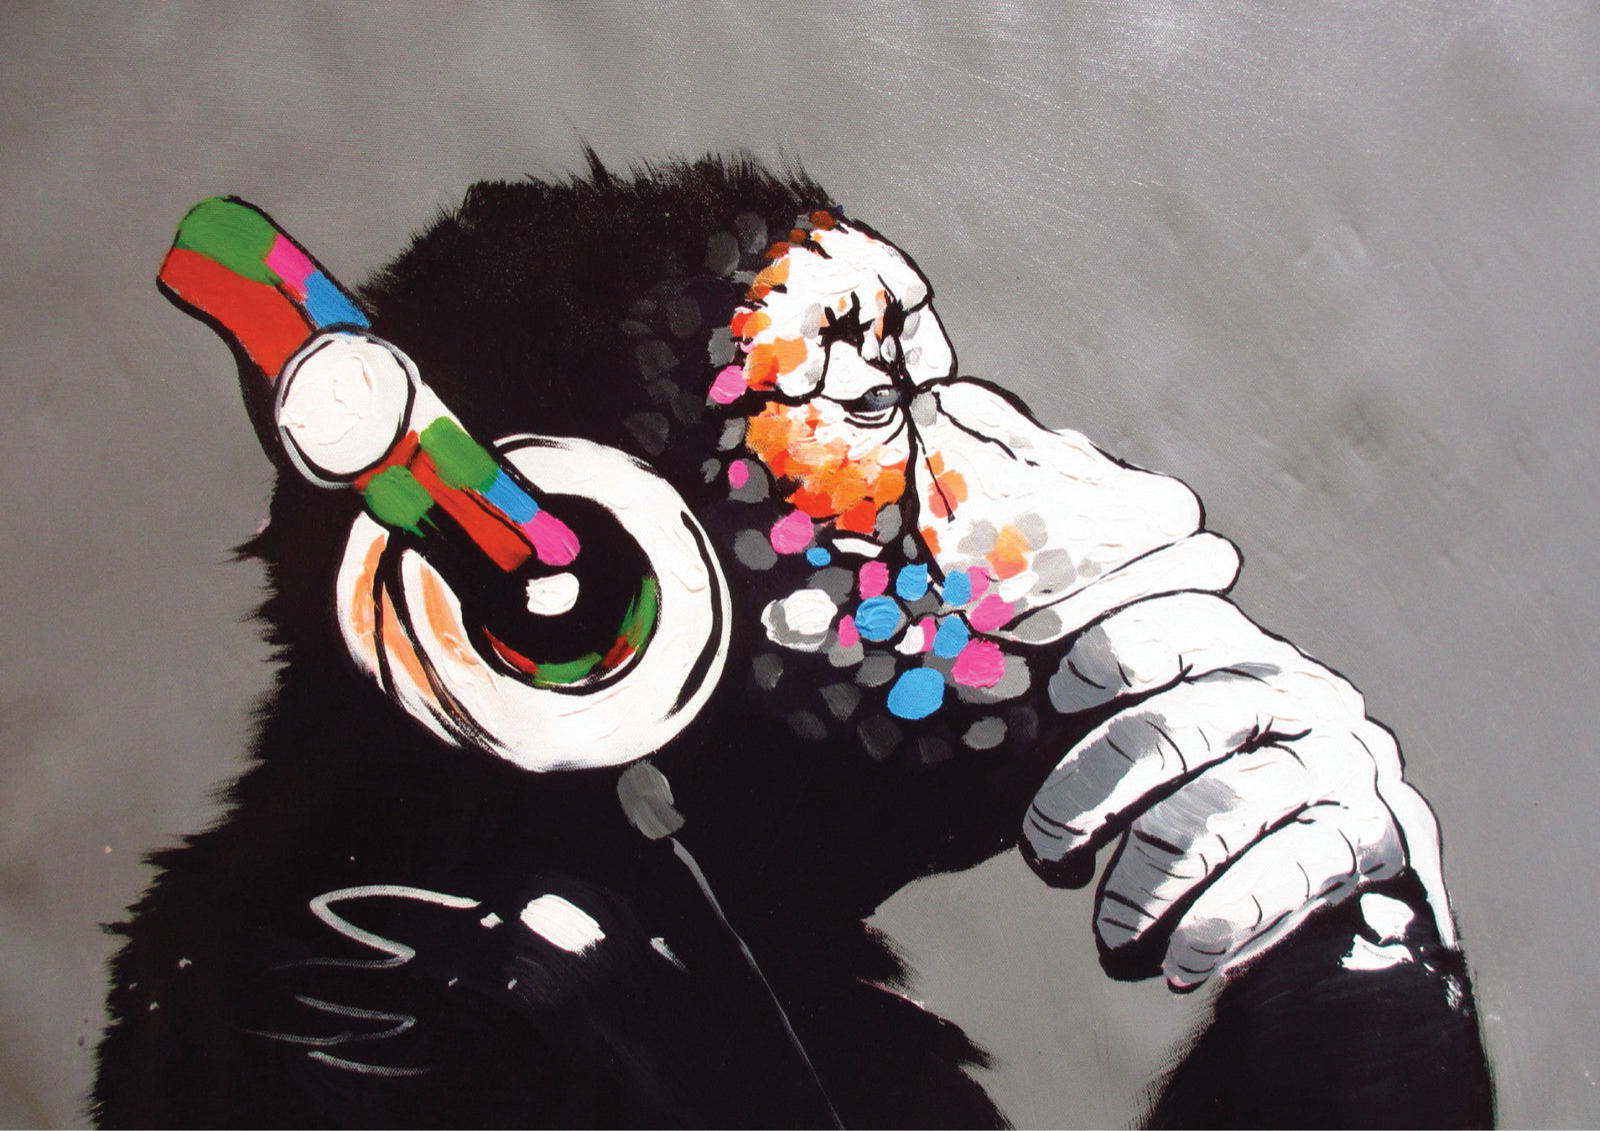 OUT OF BED BANKSY ART POSTER PRINT A3 SIZE